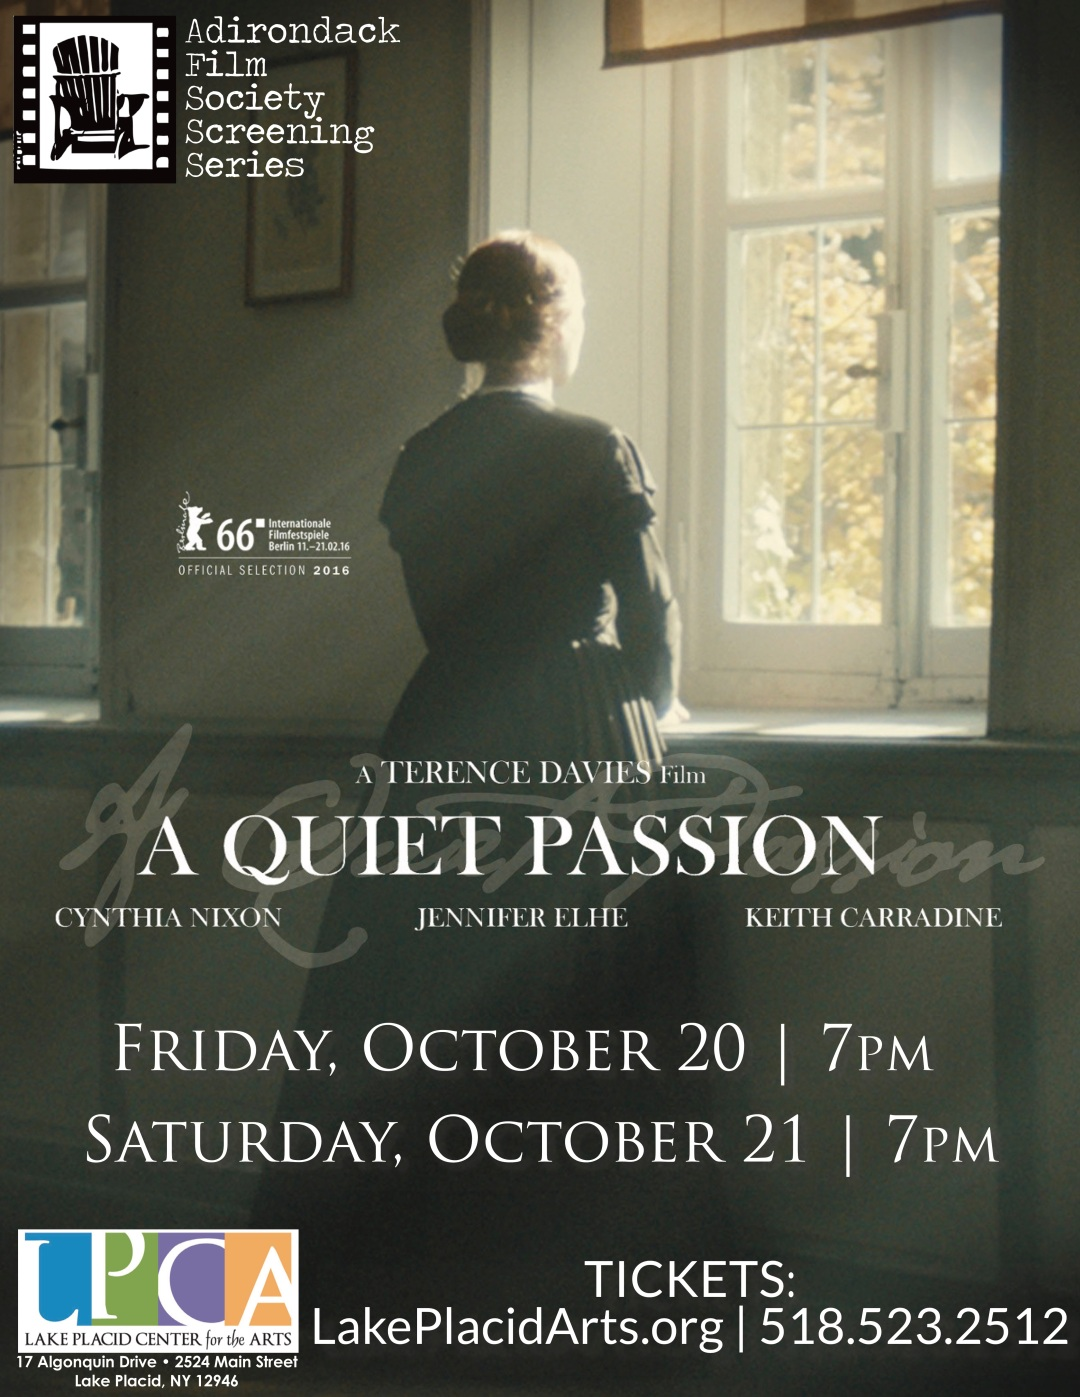 A Quiet Passion LPCA flyer AdkFilmSocScreeningSeries 10-20&21-17